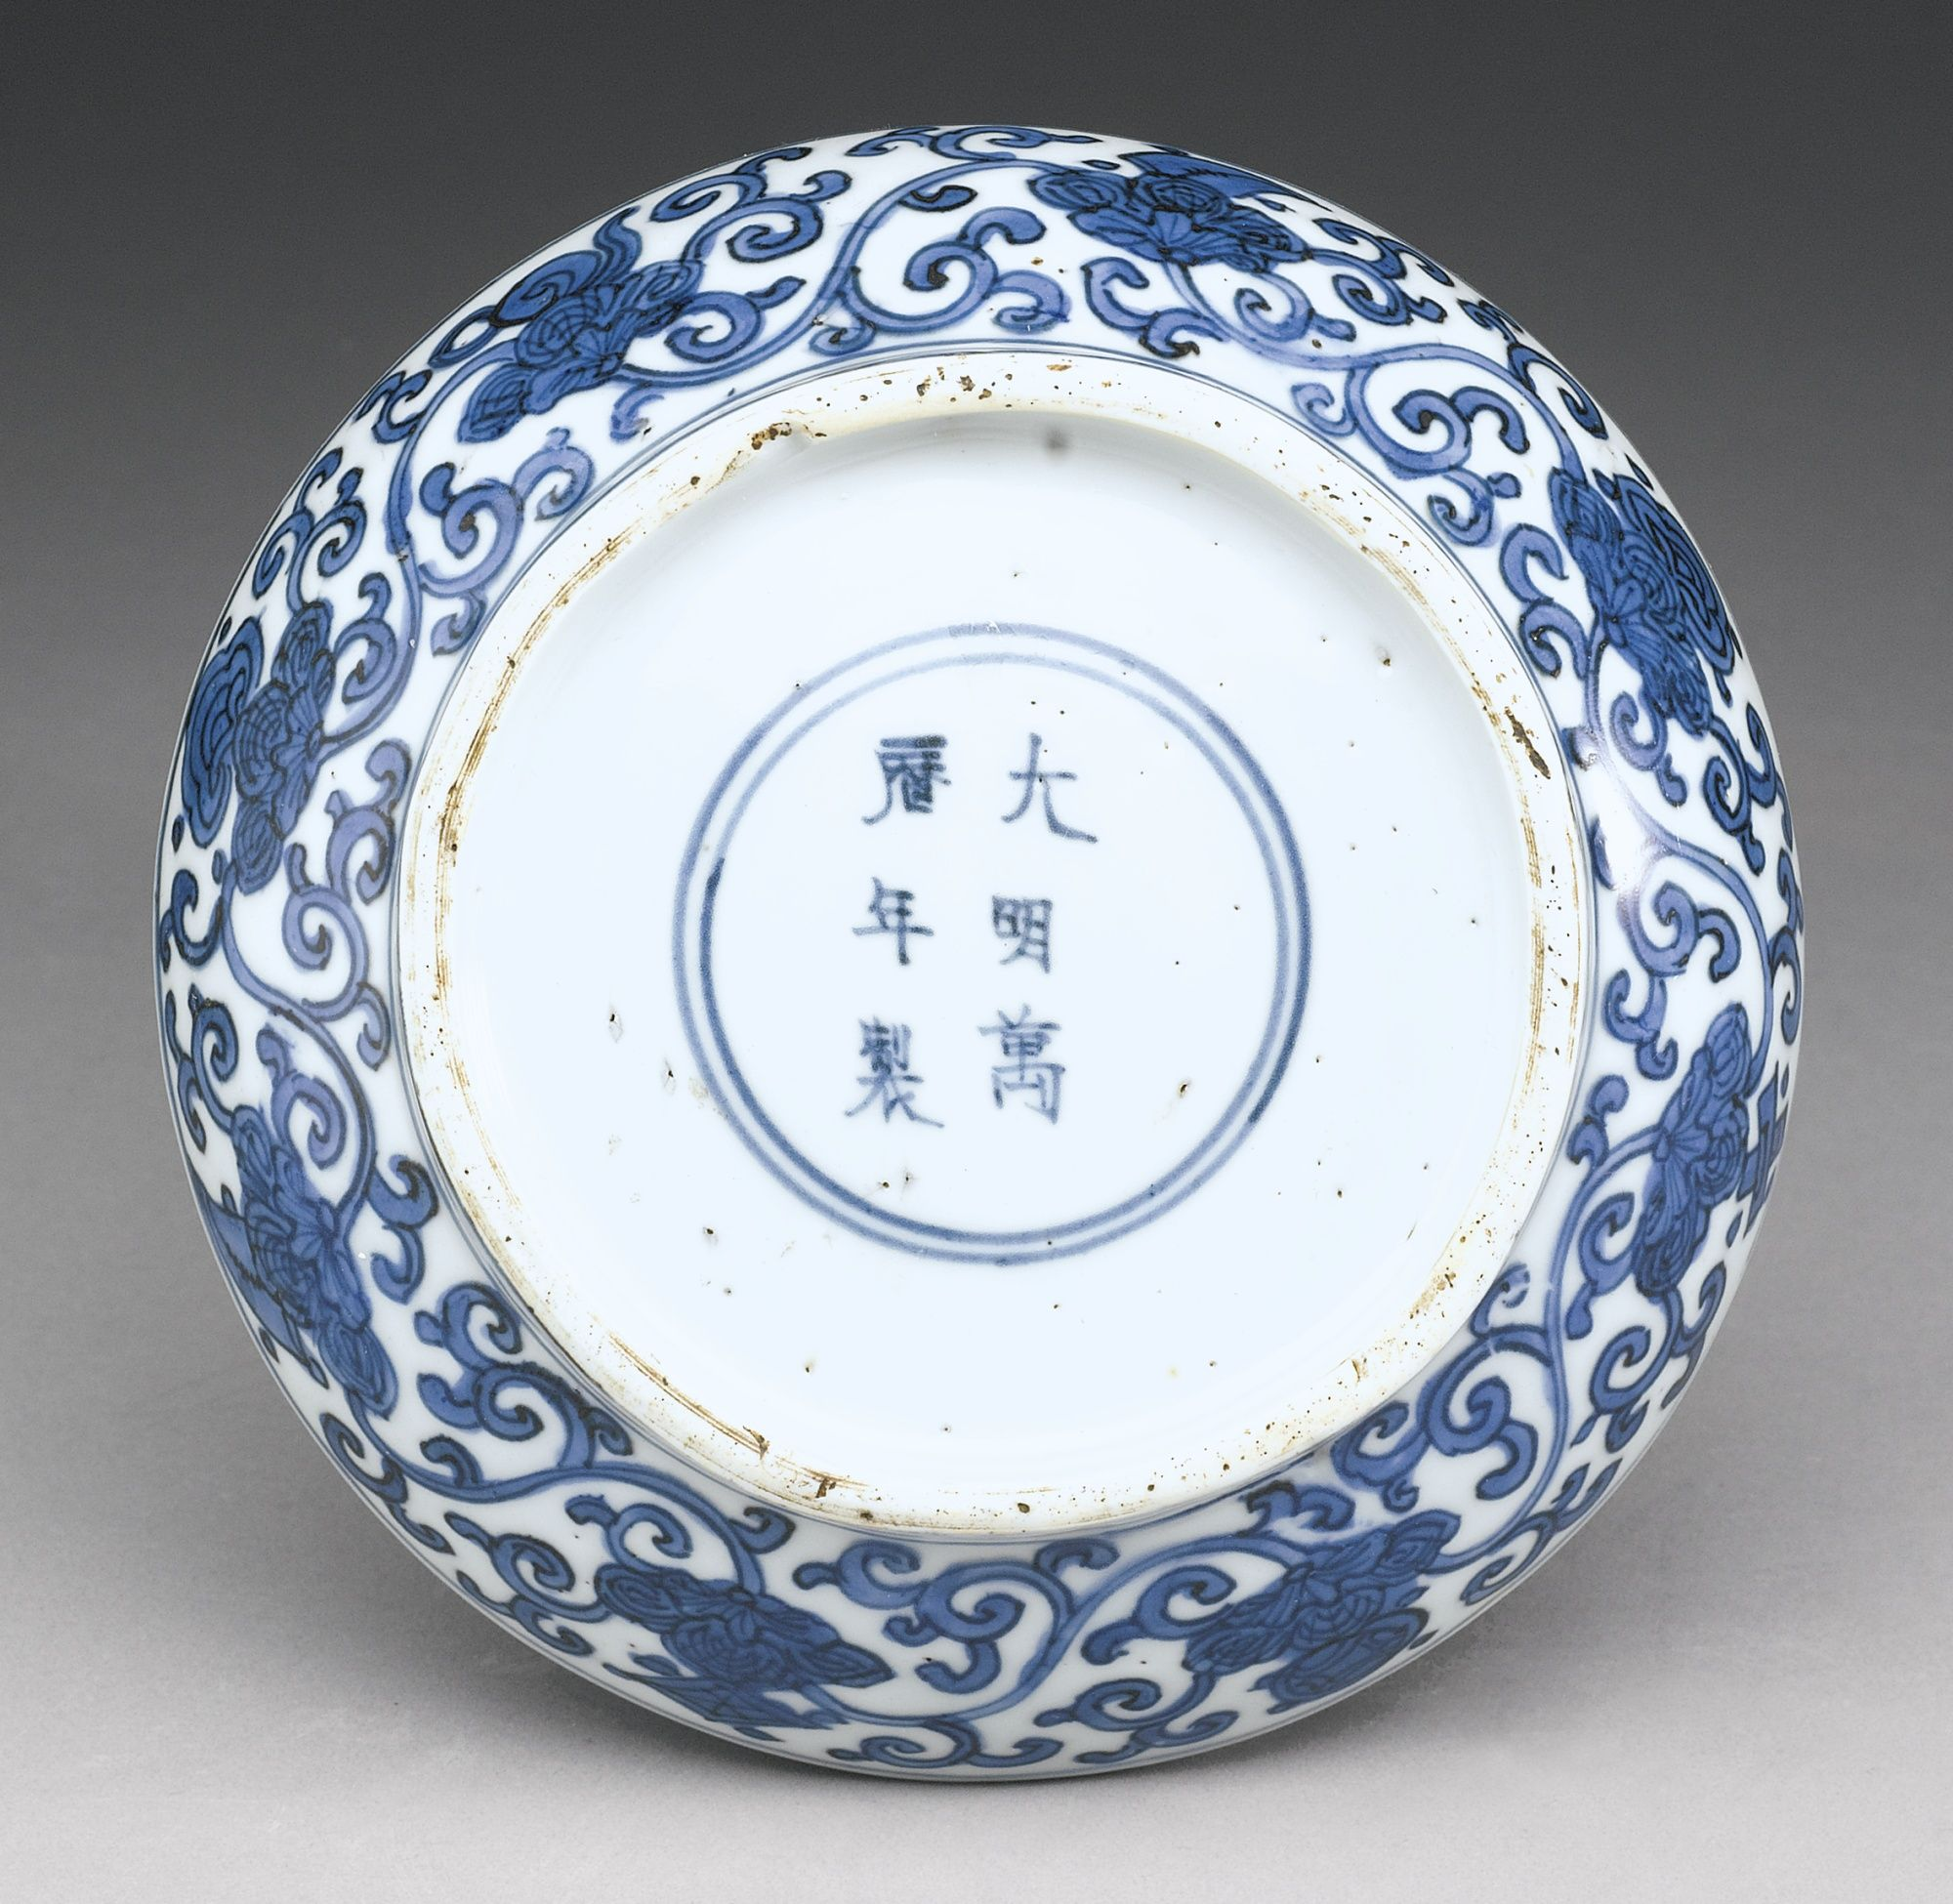 Marks on chinese porcelain ming dynasty 1368 1644 reign marks marks on chinese porcelain ming dynasty 1368 1644 reign marks wanli 1573 1620 ceramic ware pinterest porcelain and pottery reviewsmspy